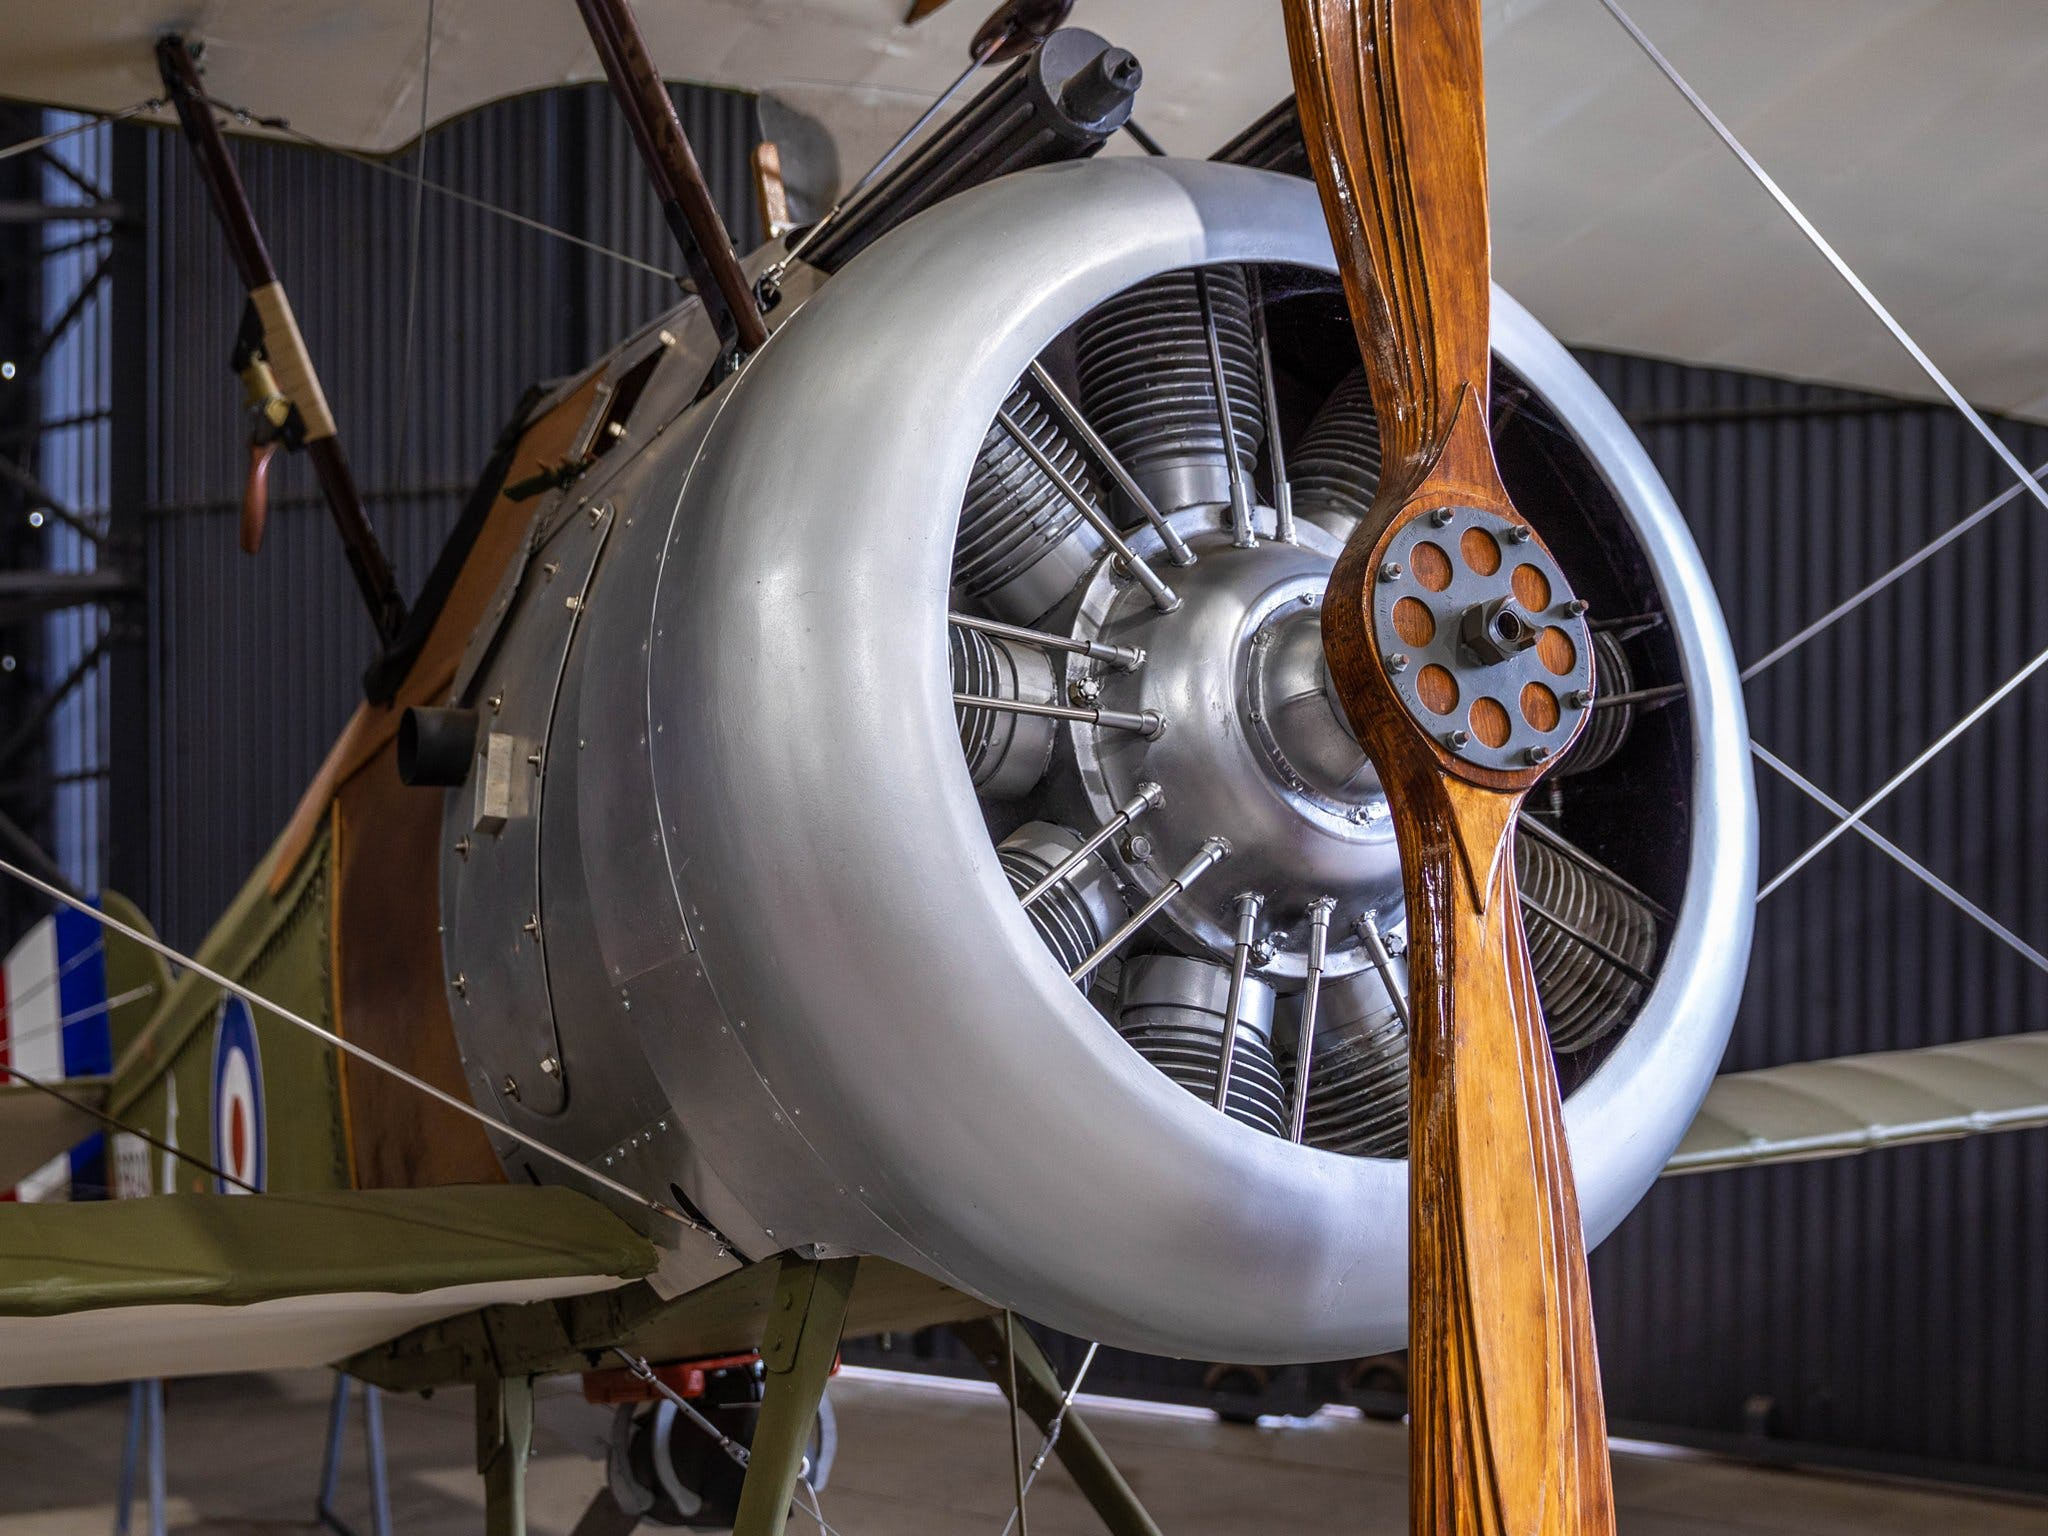 RAAF Amberley Aviation Heritage Centre - Broome Tourism